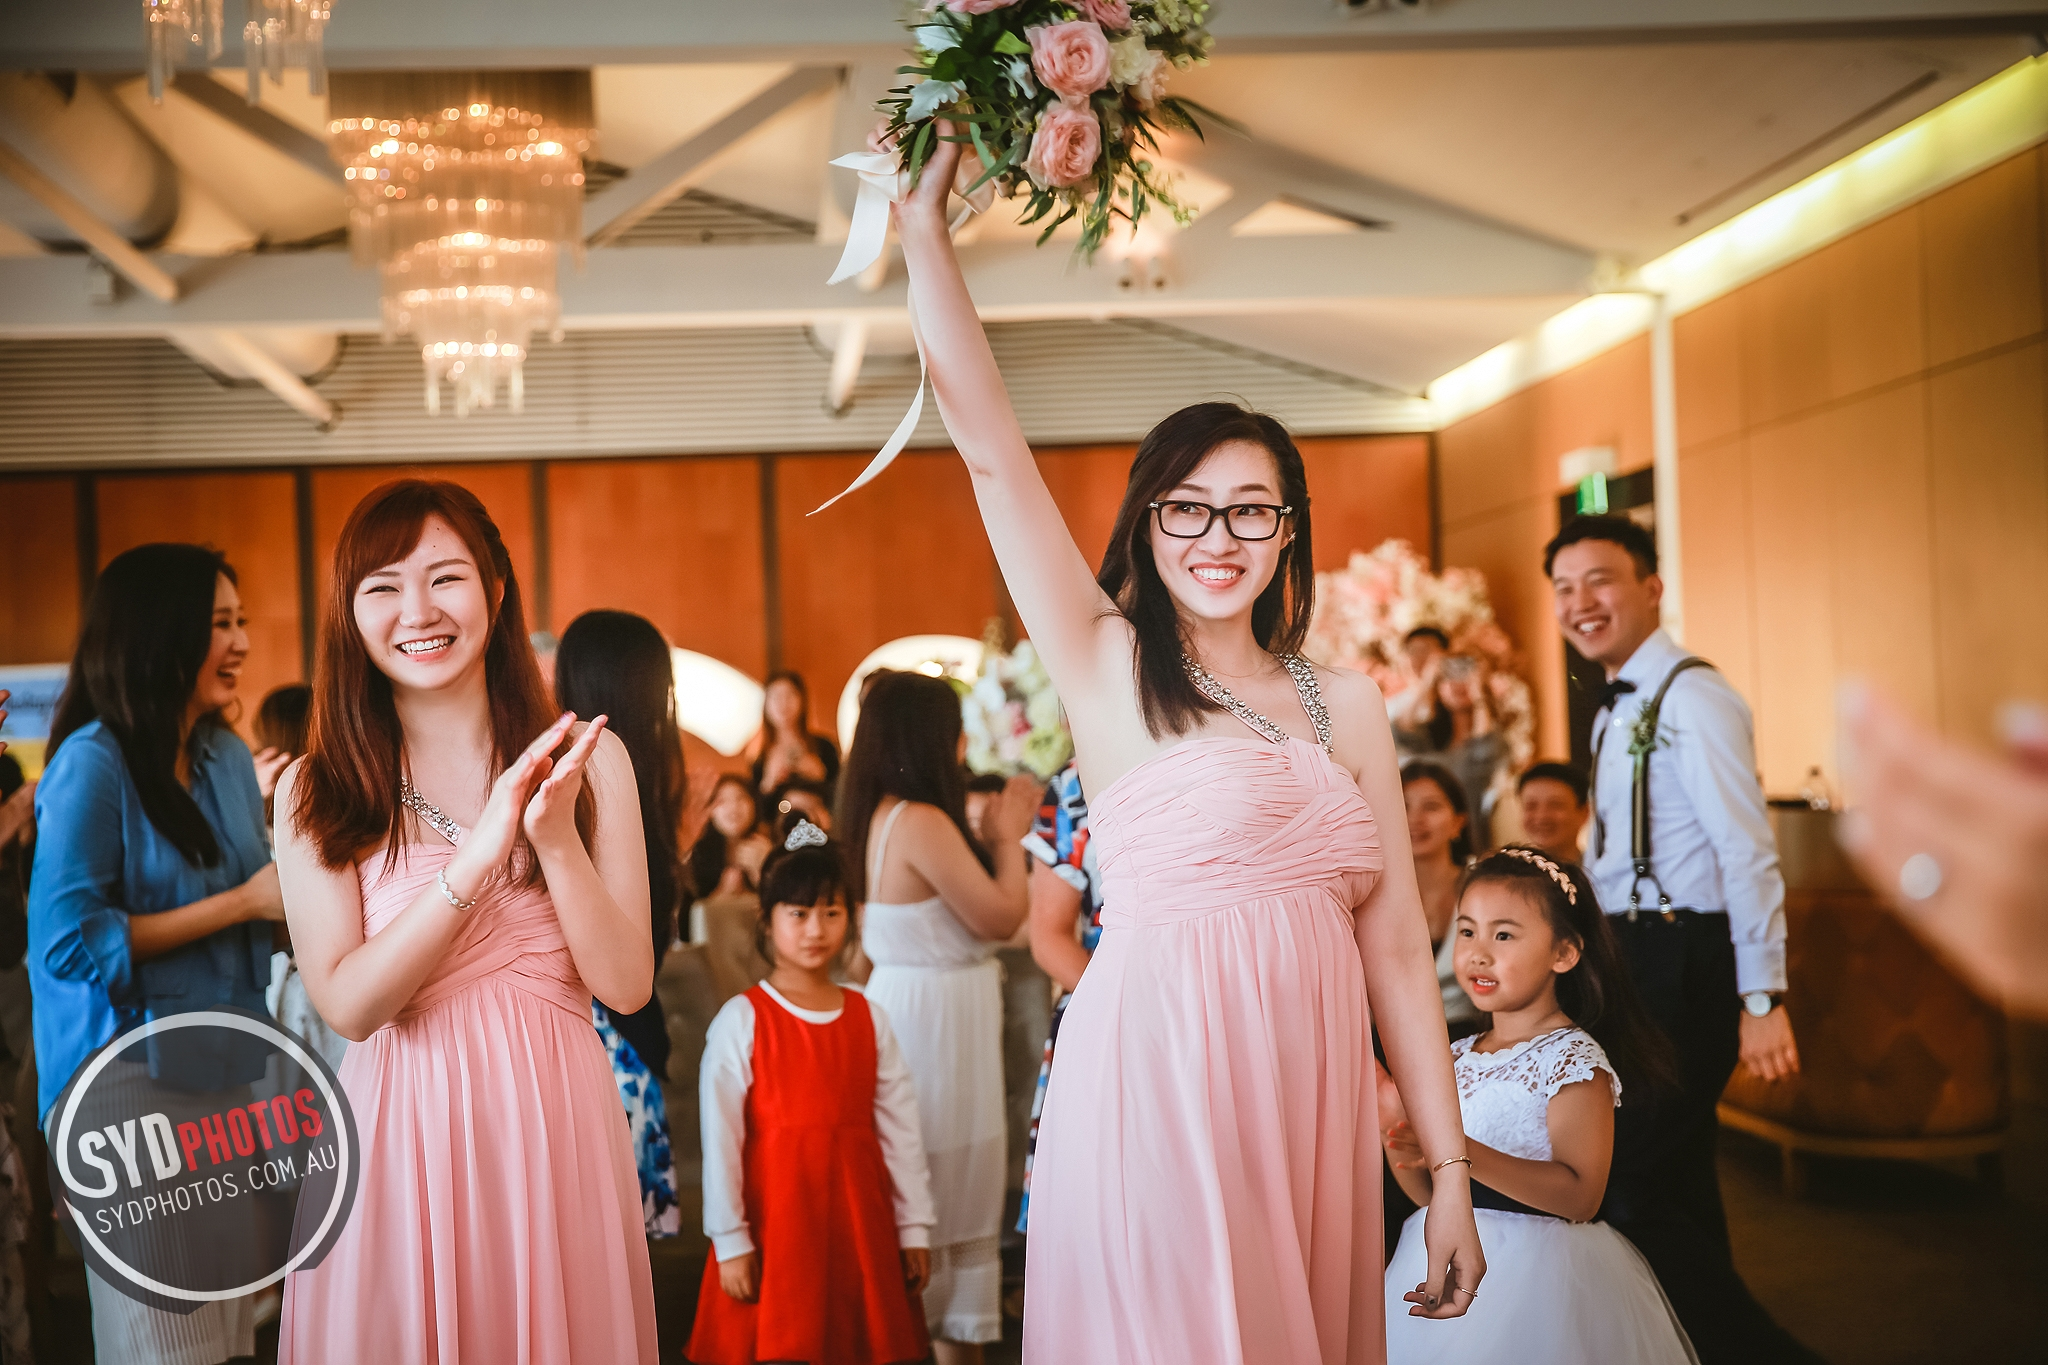 id-94145-20180304-746.jpg, By Photographer Sydphotos.wedding, Created on 21 Jun 2018, SYDPHOTOS Photography all rights reserved.